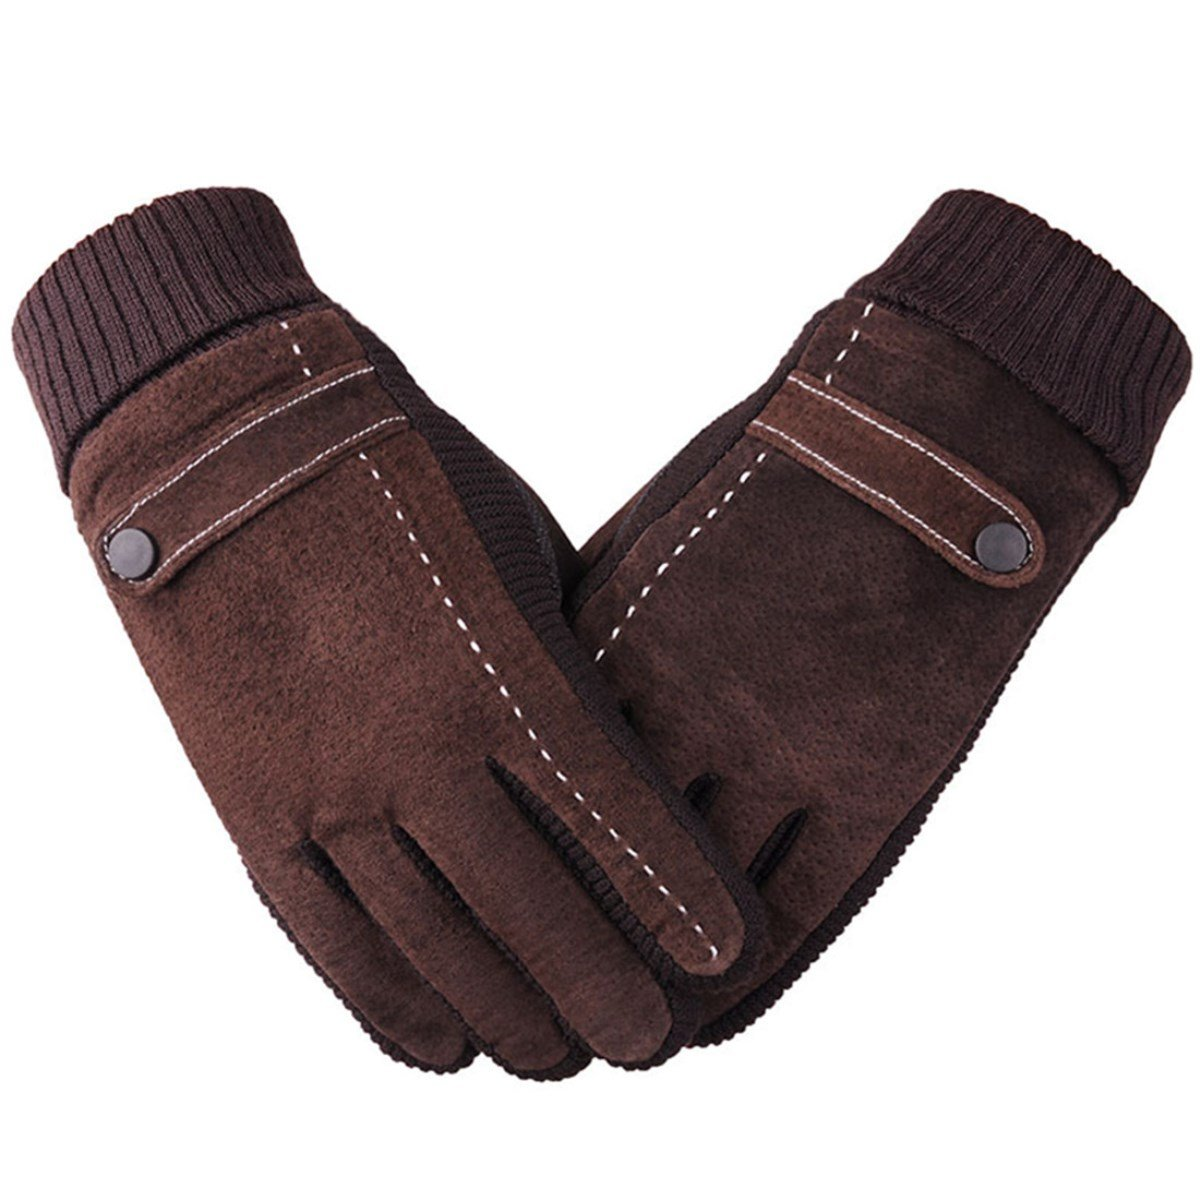 D.King Mens Winter Outdoors Gloves Suede Leather Knit Cuff with Thick Fleece Lining Mittens Brown by D.King